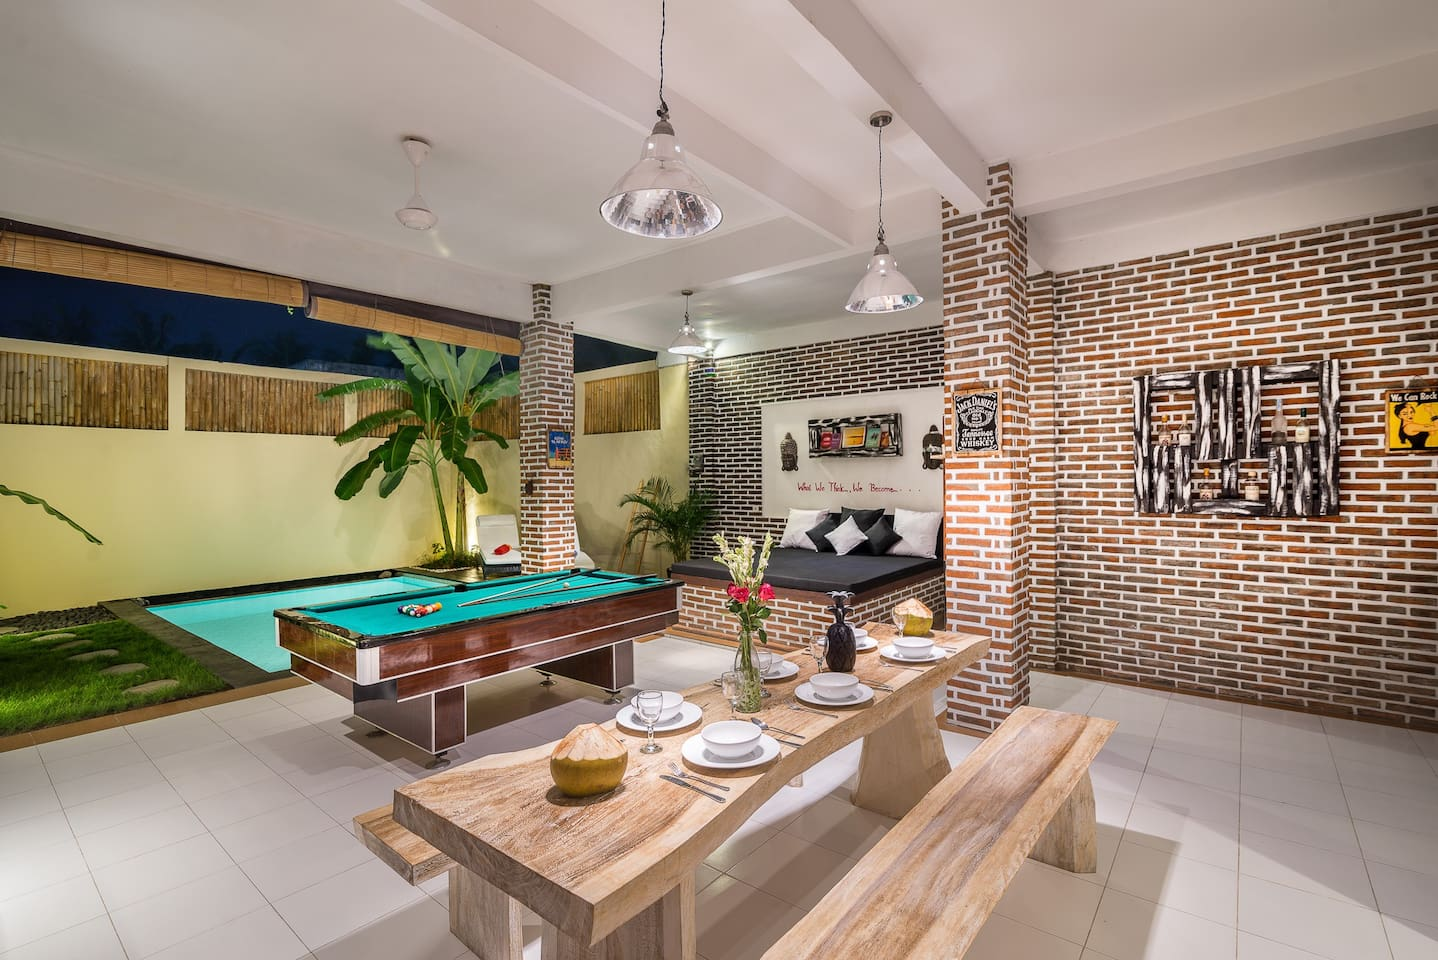 Kitchen view of living room with pool table and garden